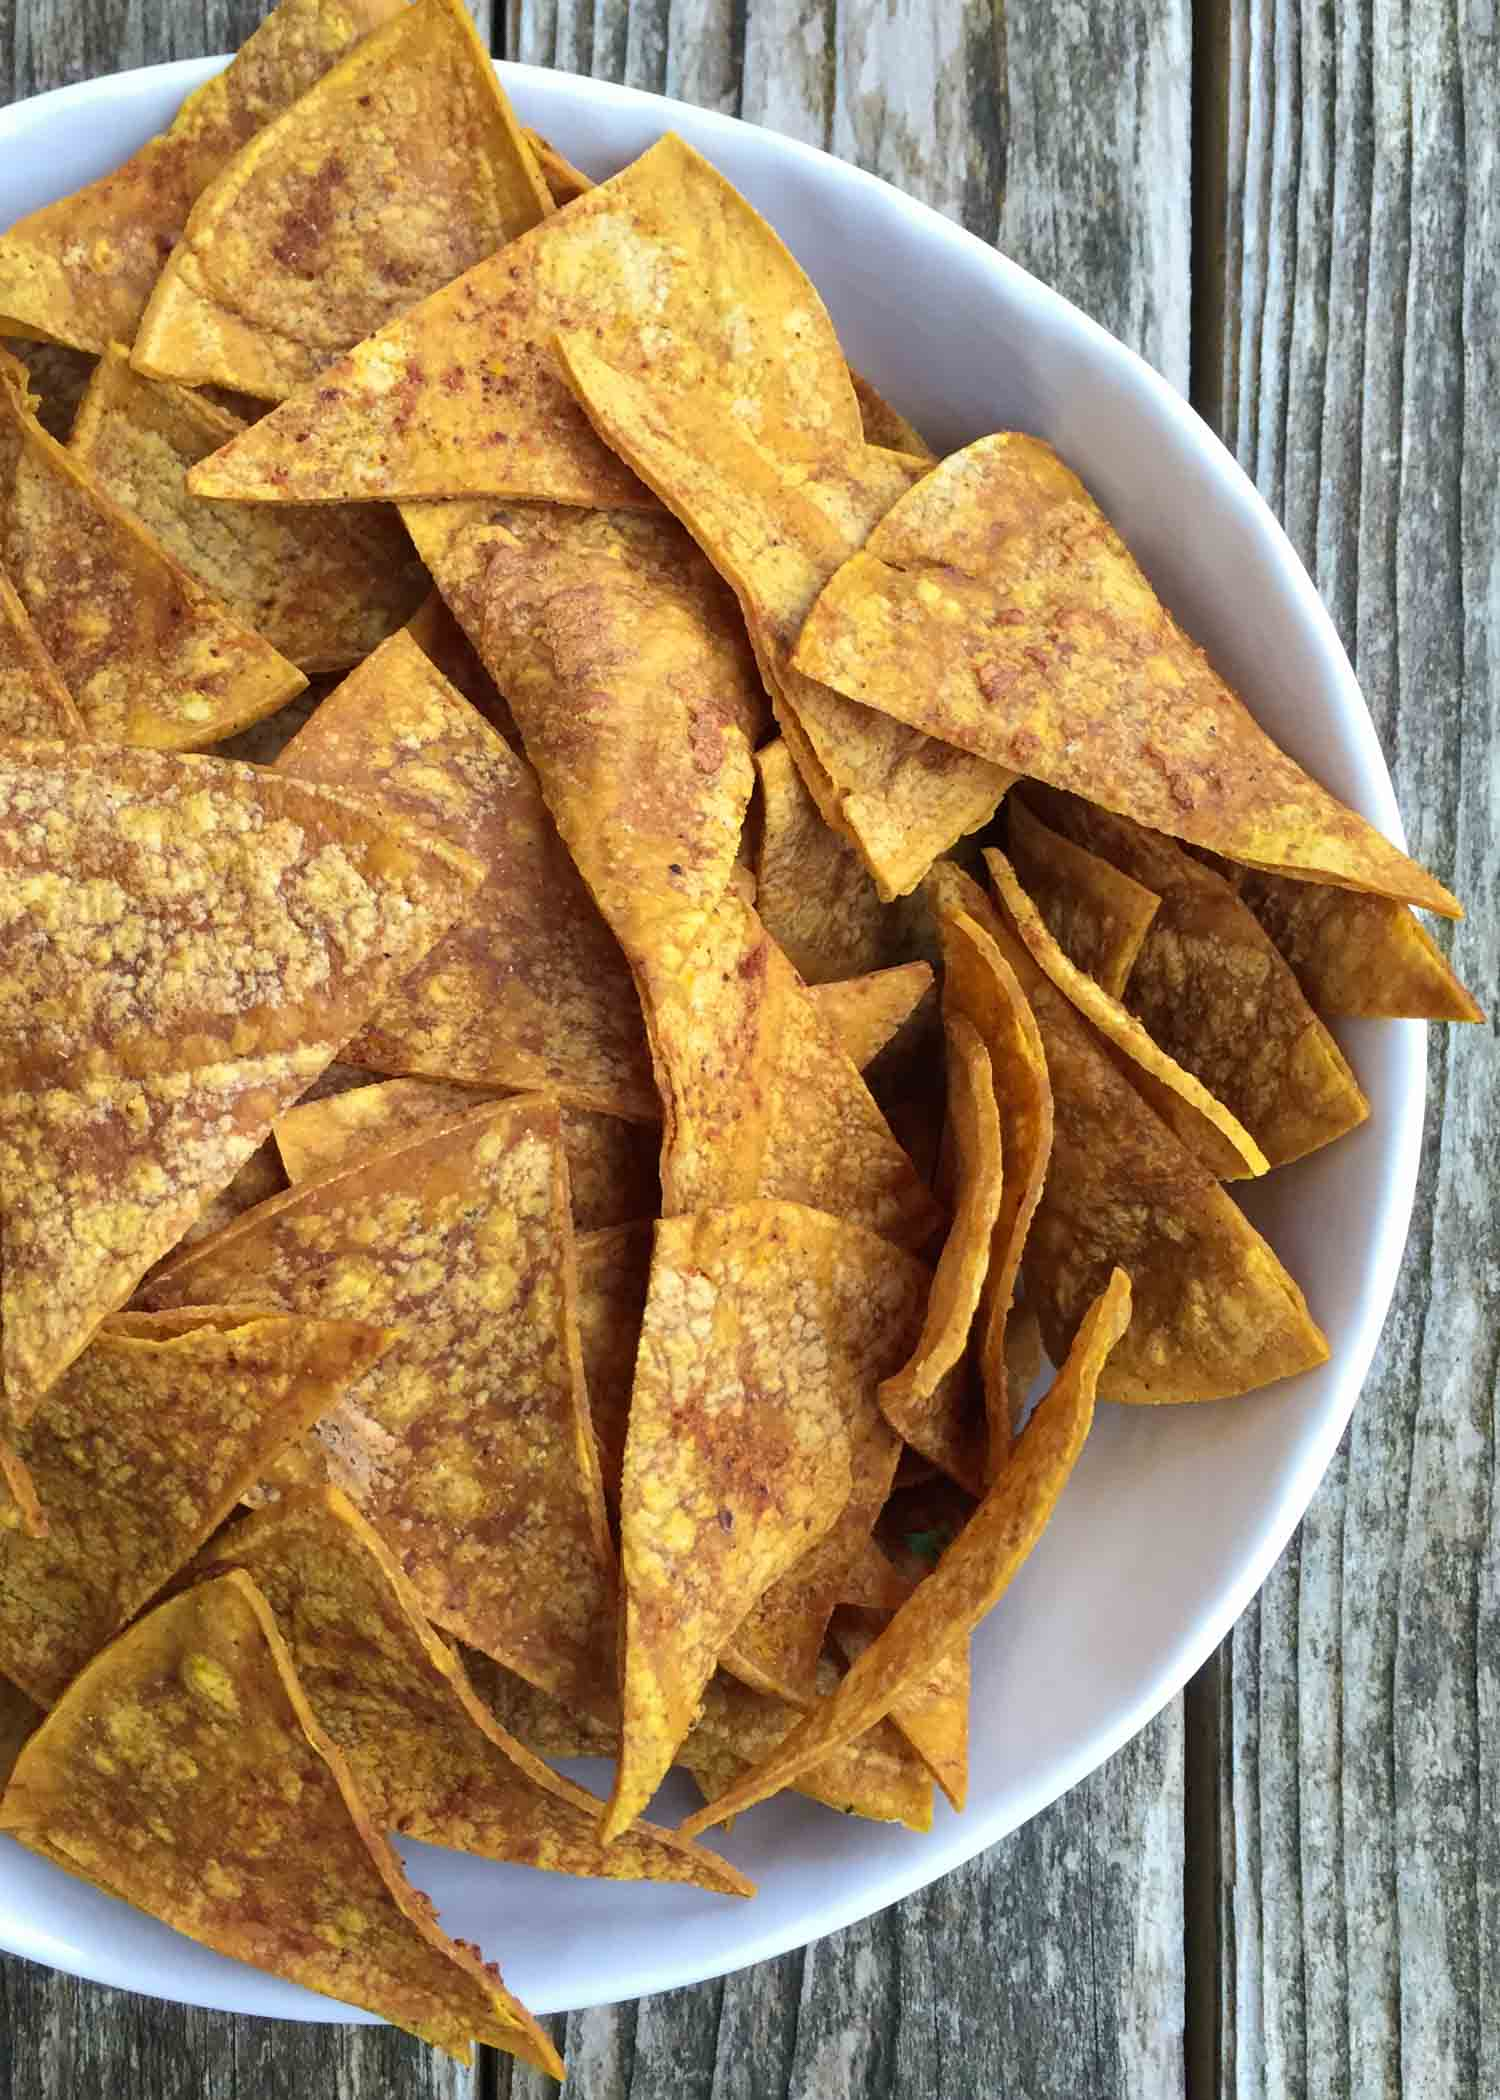 Homemade Baked Tortilla Chips. By Beautiful Ingredient